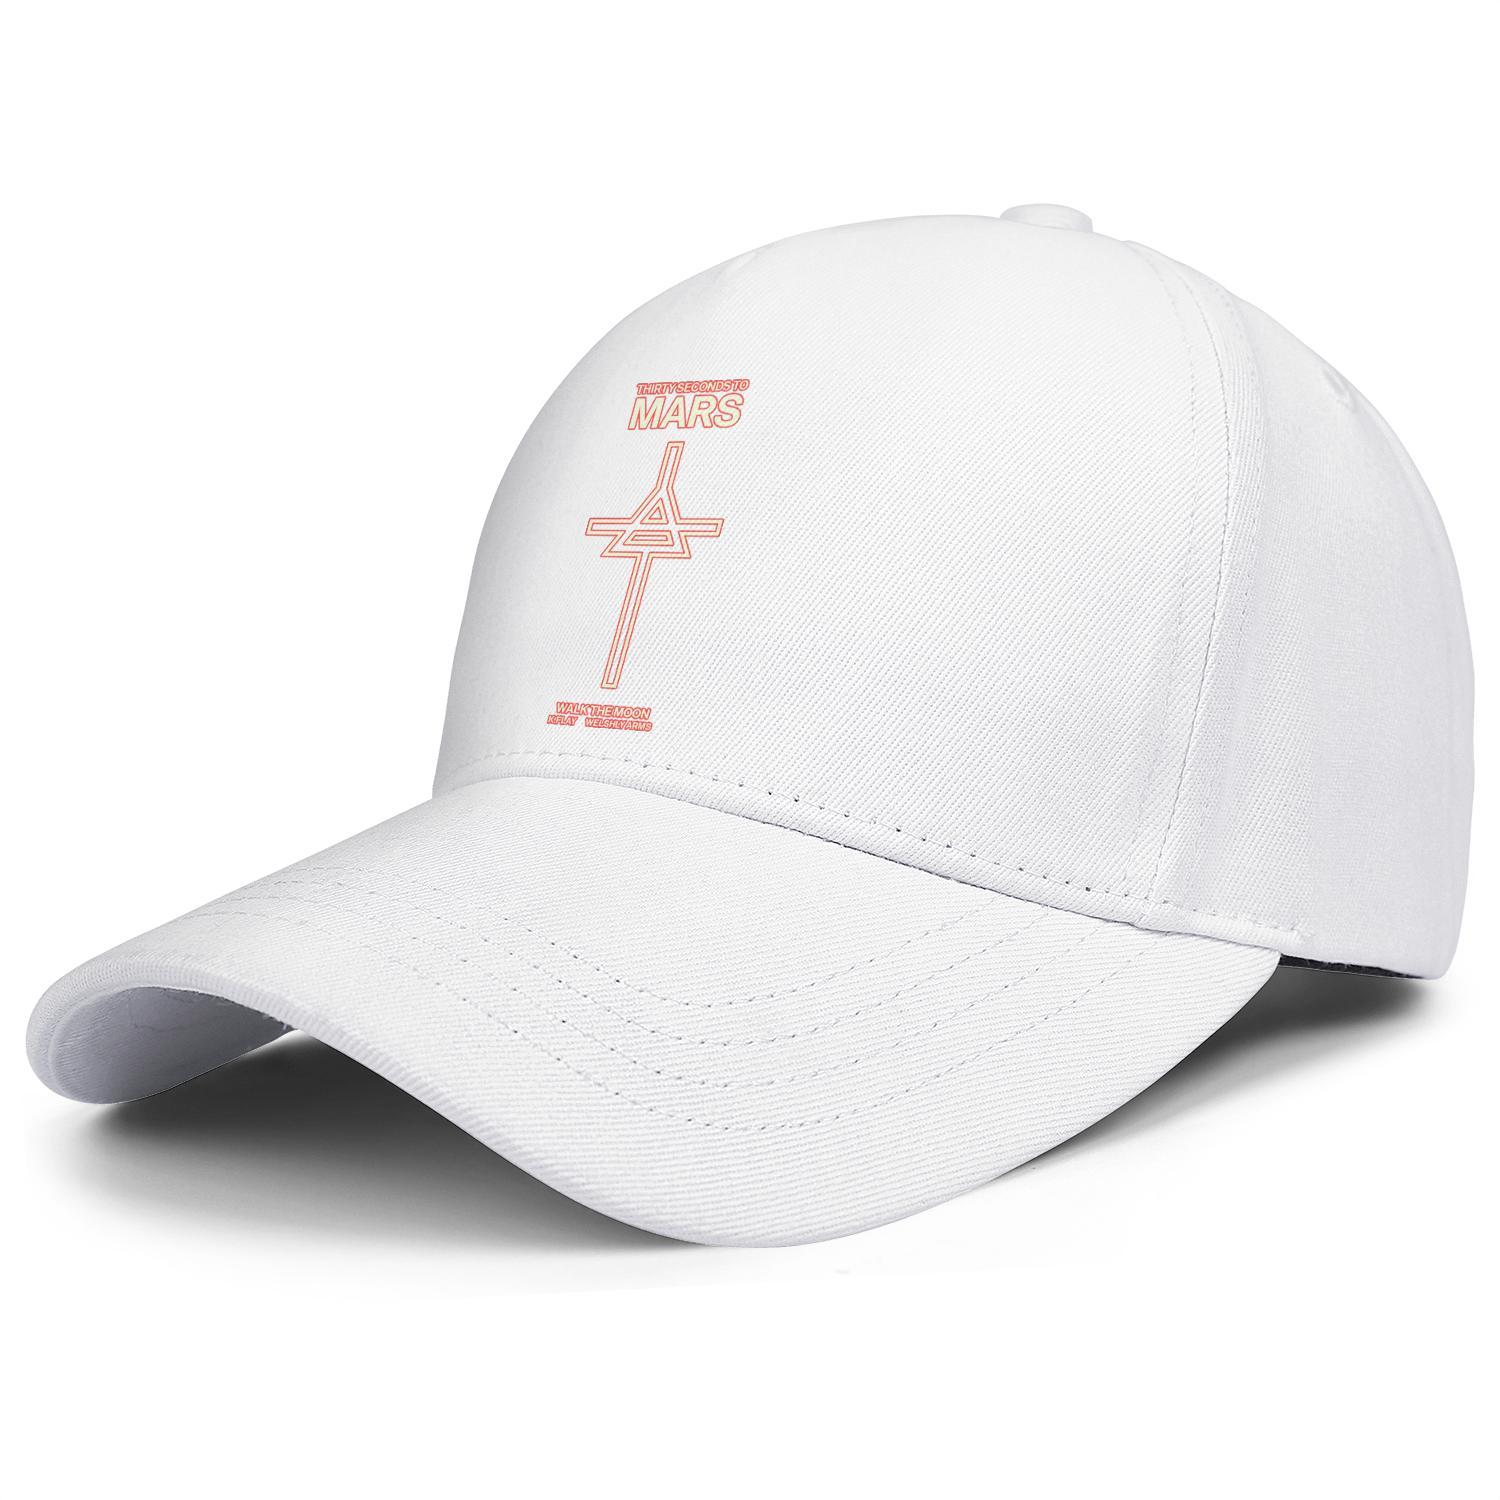 Thirty seconds to mars july 6 event Unisex Cute Baseball Cap Unconstructed Walking Men Cricket Hat